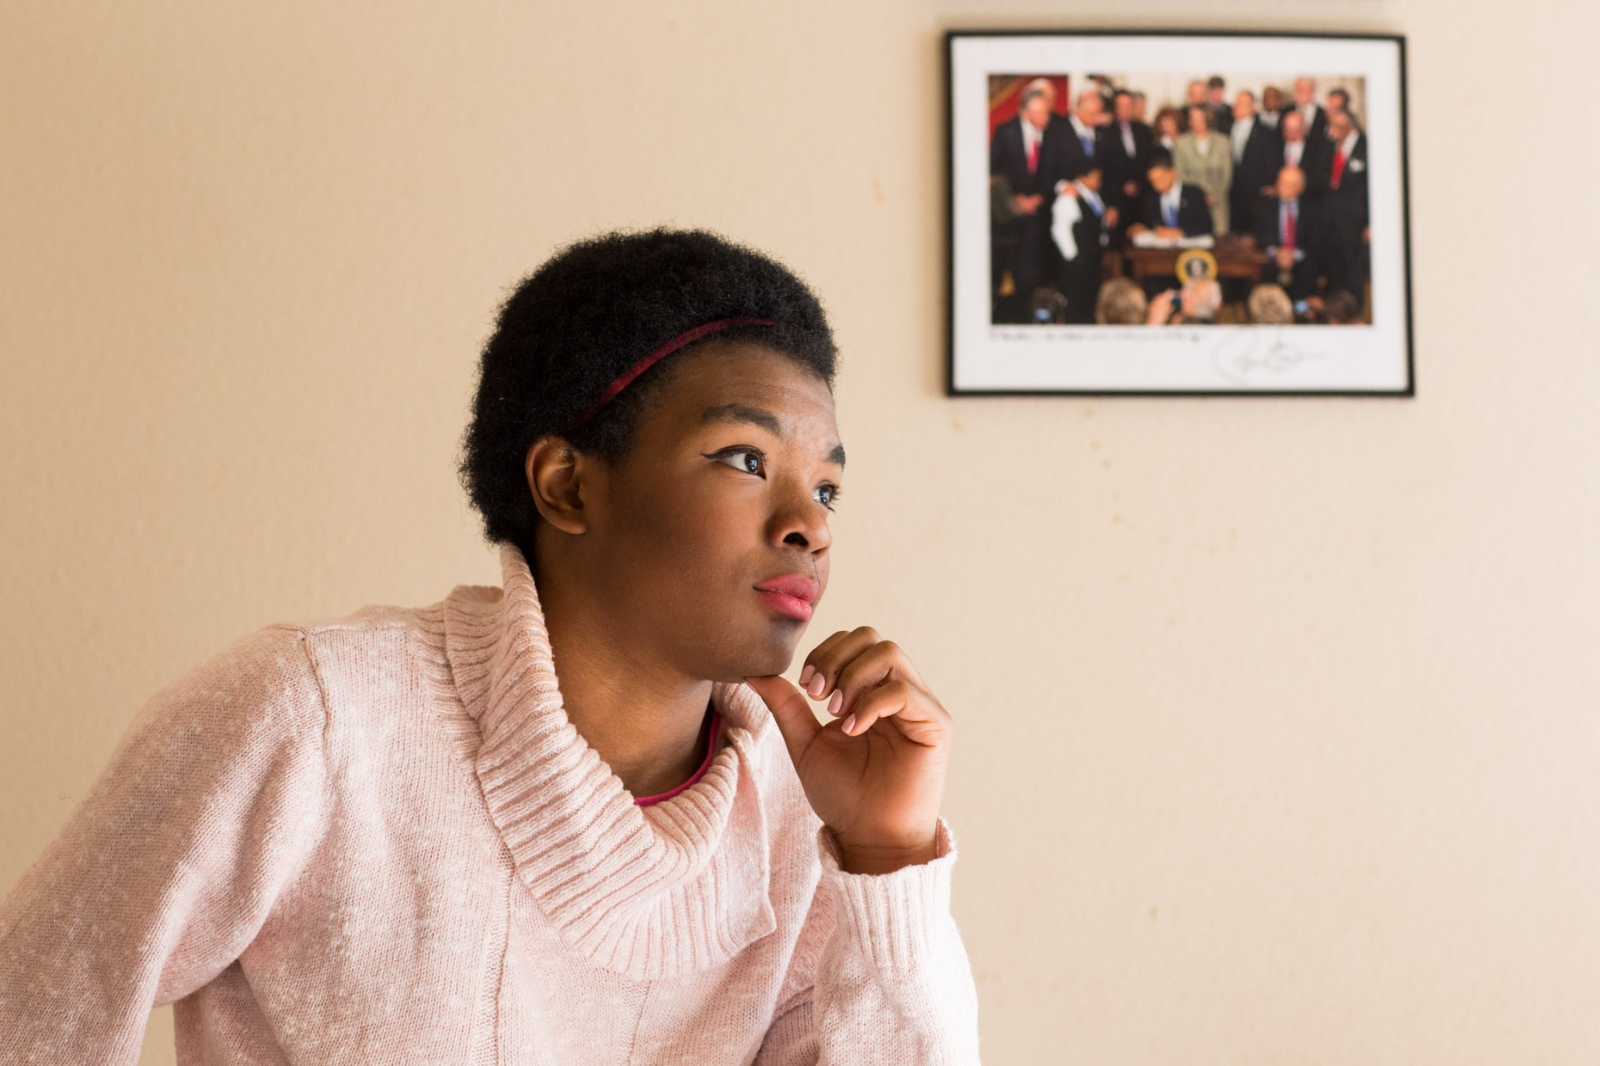 "Marcelas Owens, 17, at her home in Seattle, Washington. A photo of Marcelas and Barack Obama hangs on the wall behind her and is signed by Obama ""To Marcelas- You helped make history at an early age! Barack Obama"".  For CNN Digital"